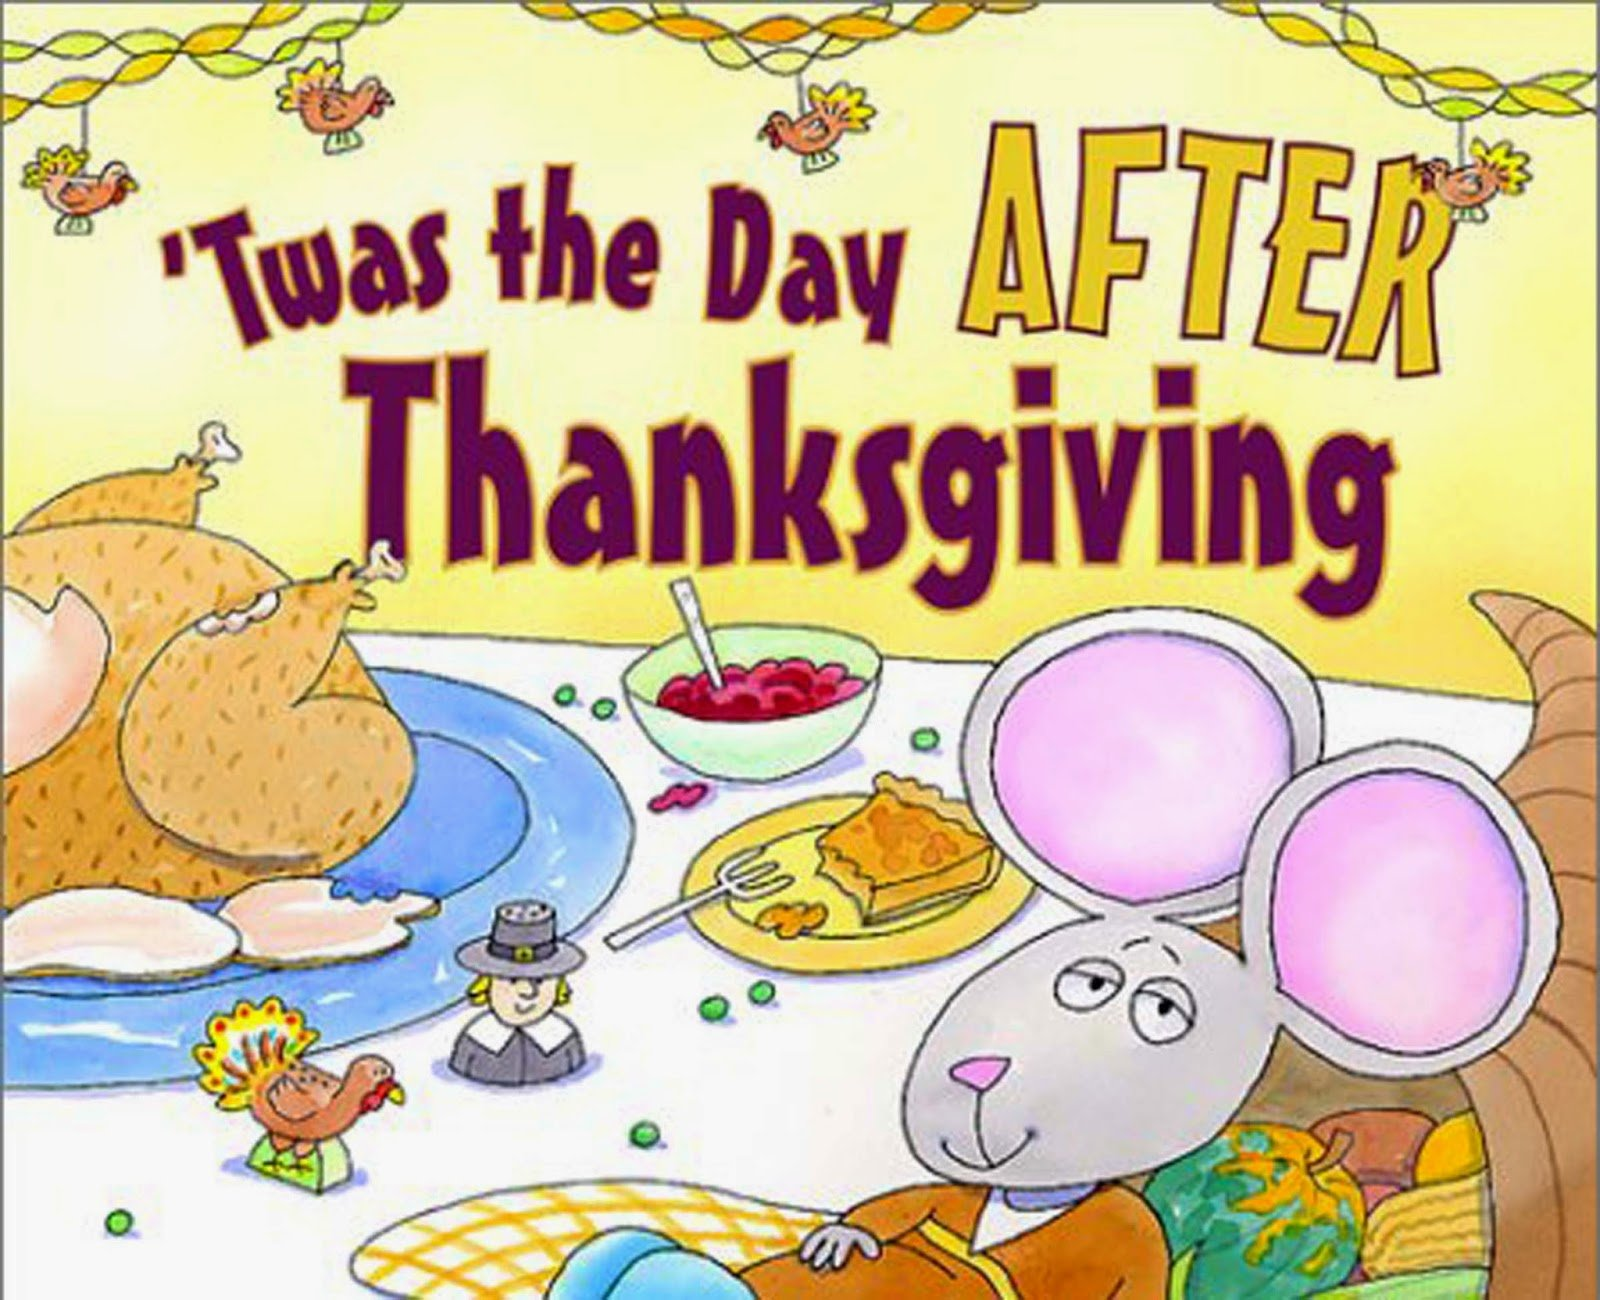 : your ) was Thanksgiving? How